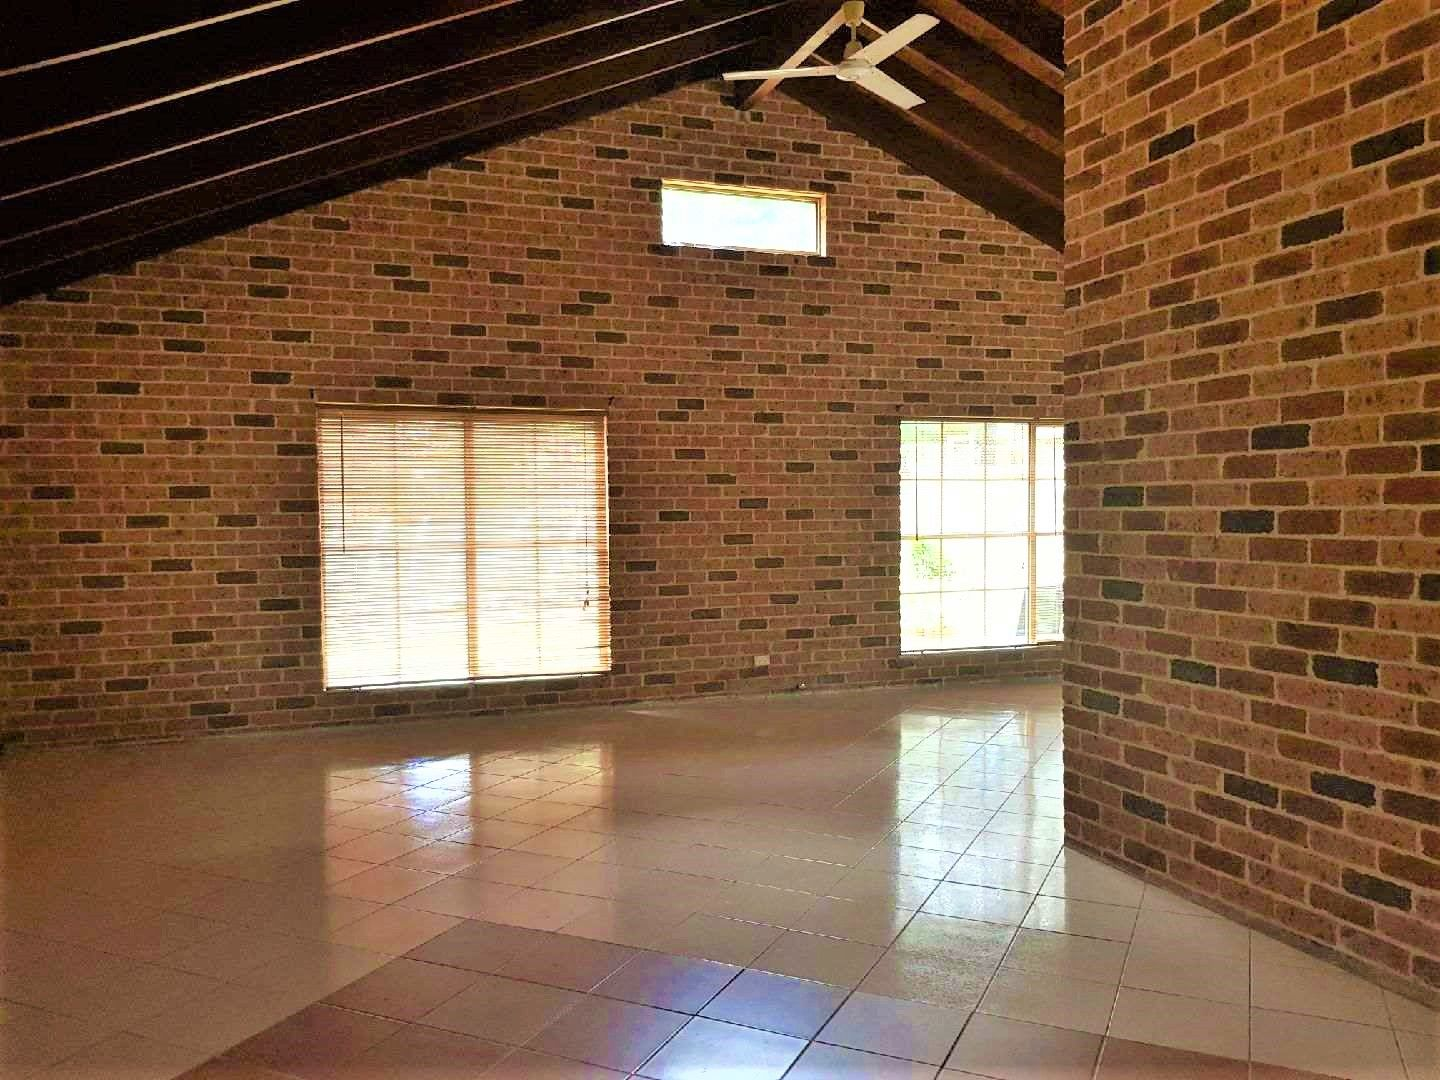 Lot 62 Pearce Street, Hill Top NSW 2575, Image 2